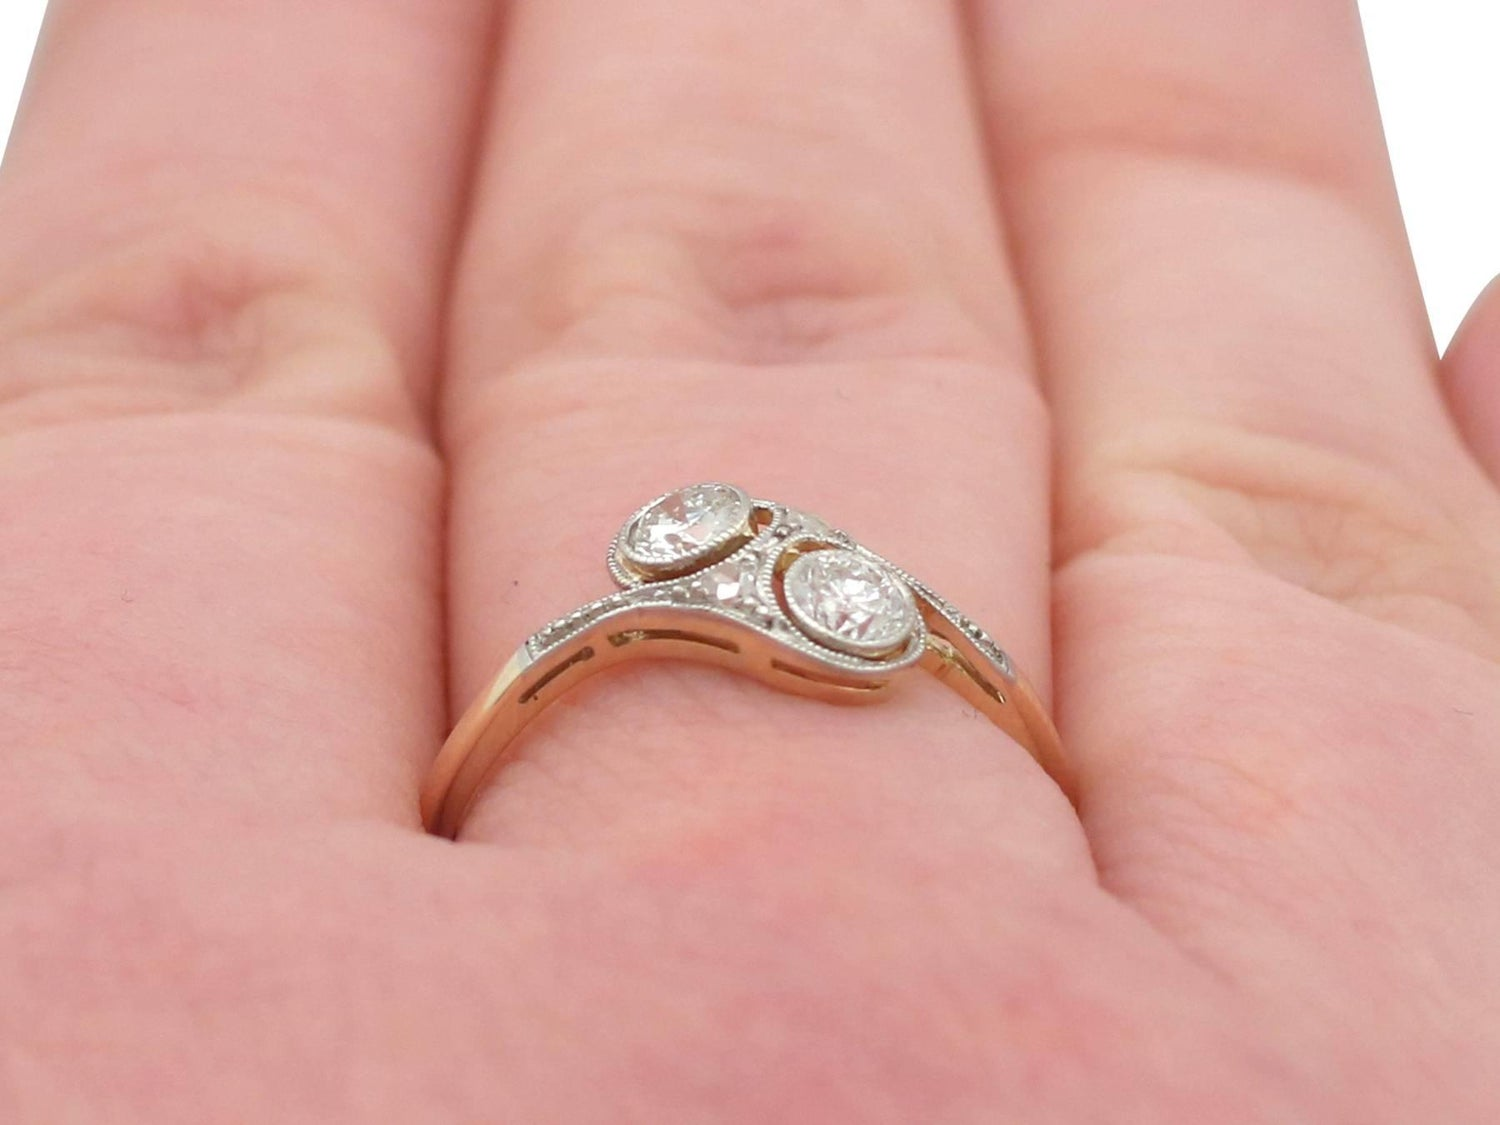 1920s Diamond and 14 Karat Yellow Gold Twist Ring For Sale at 1stdibs